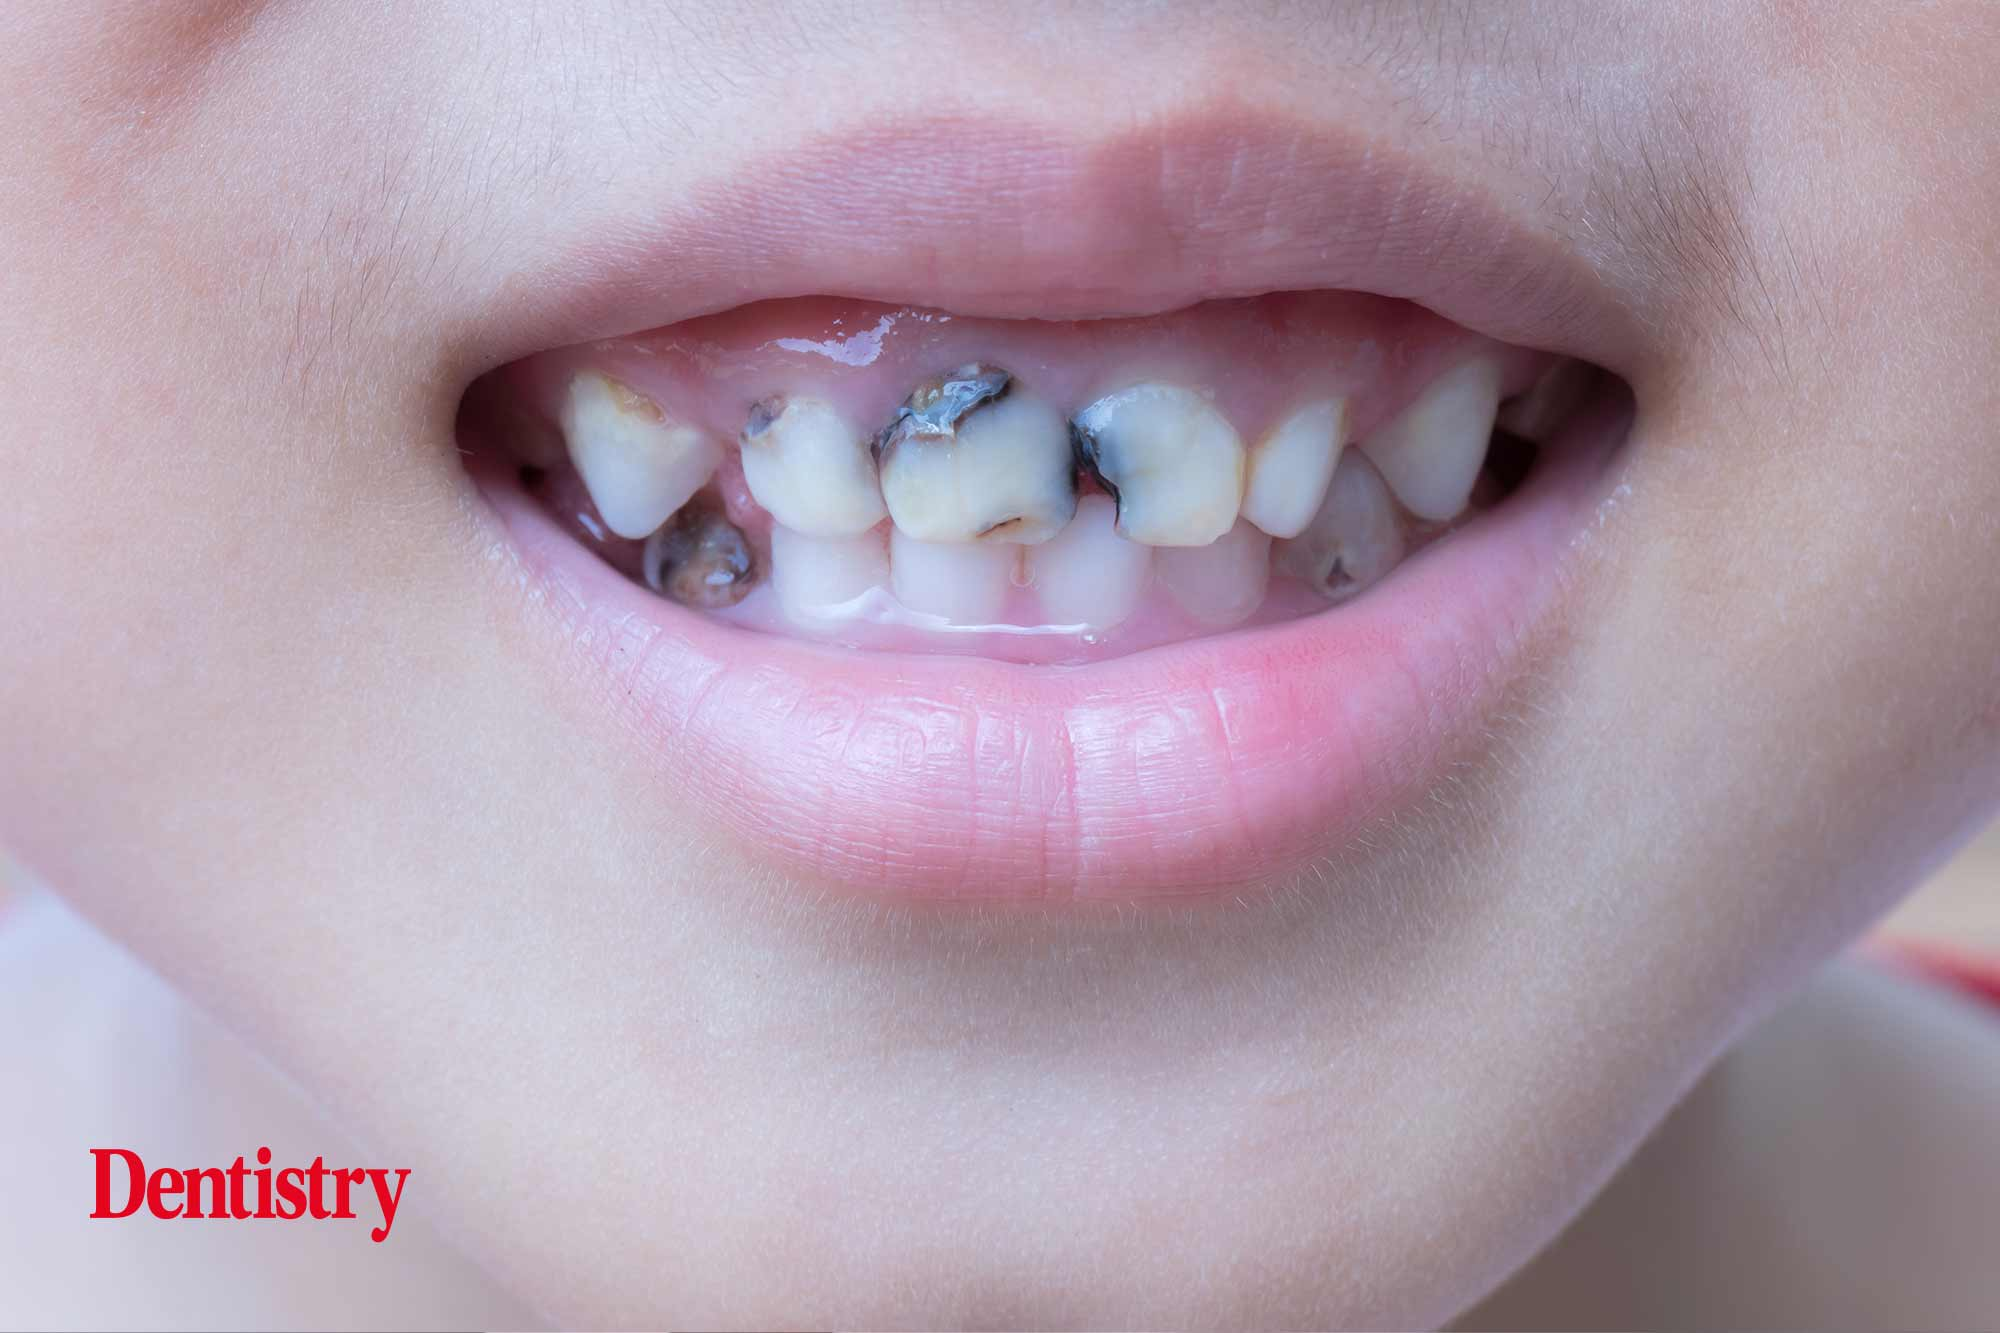 More than 10% of England's three year olds are suffering from decayed teeth, a new report reveals